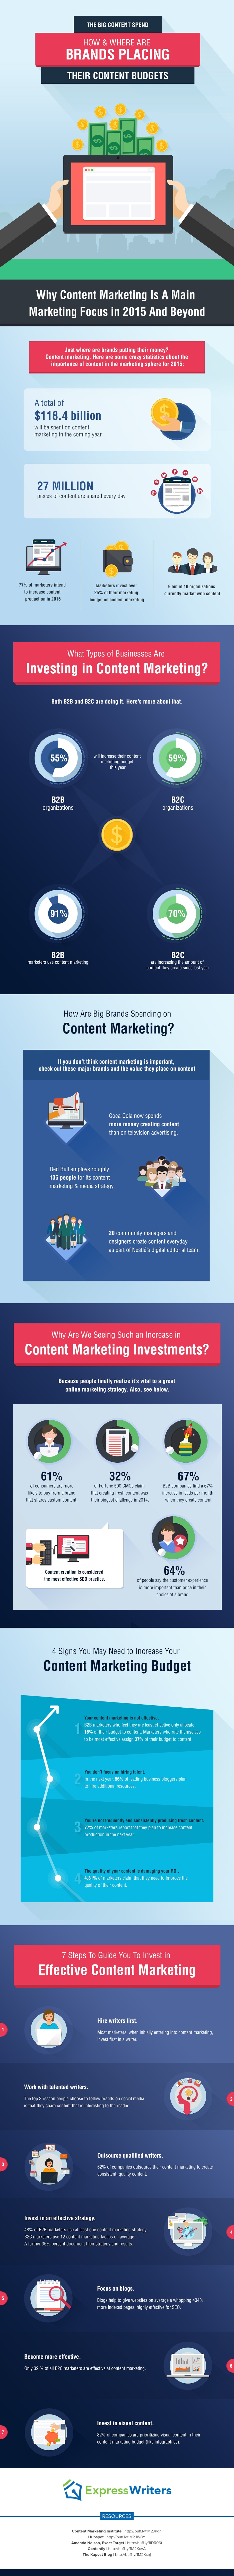 brand-content-budget-infographic